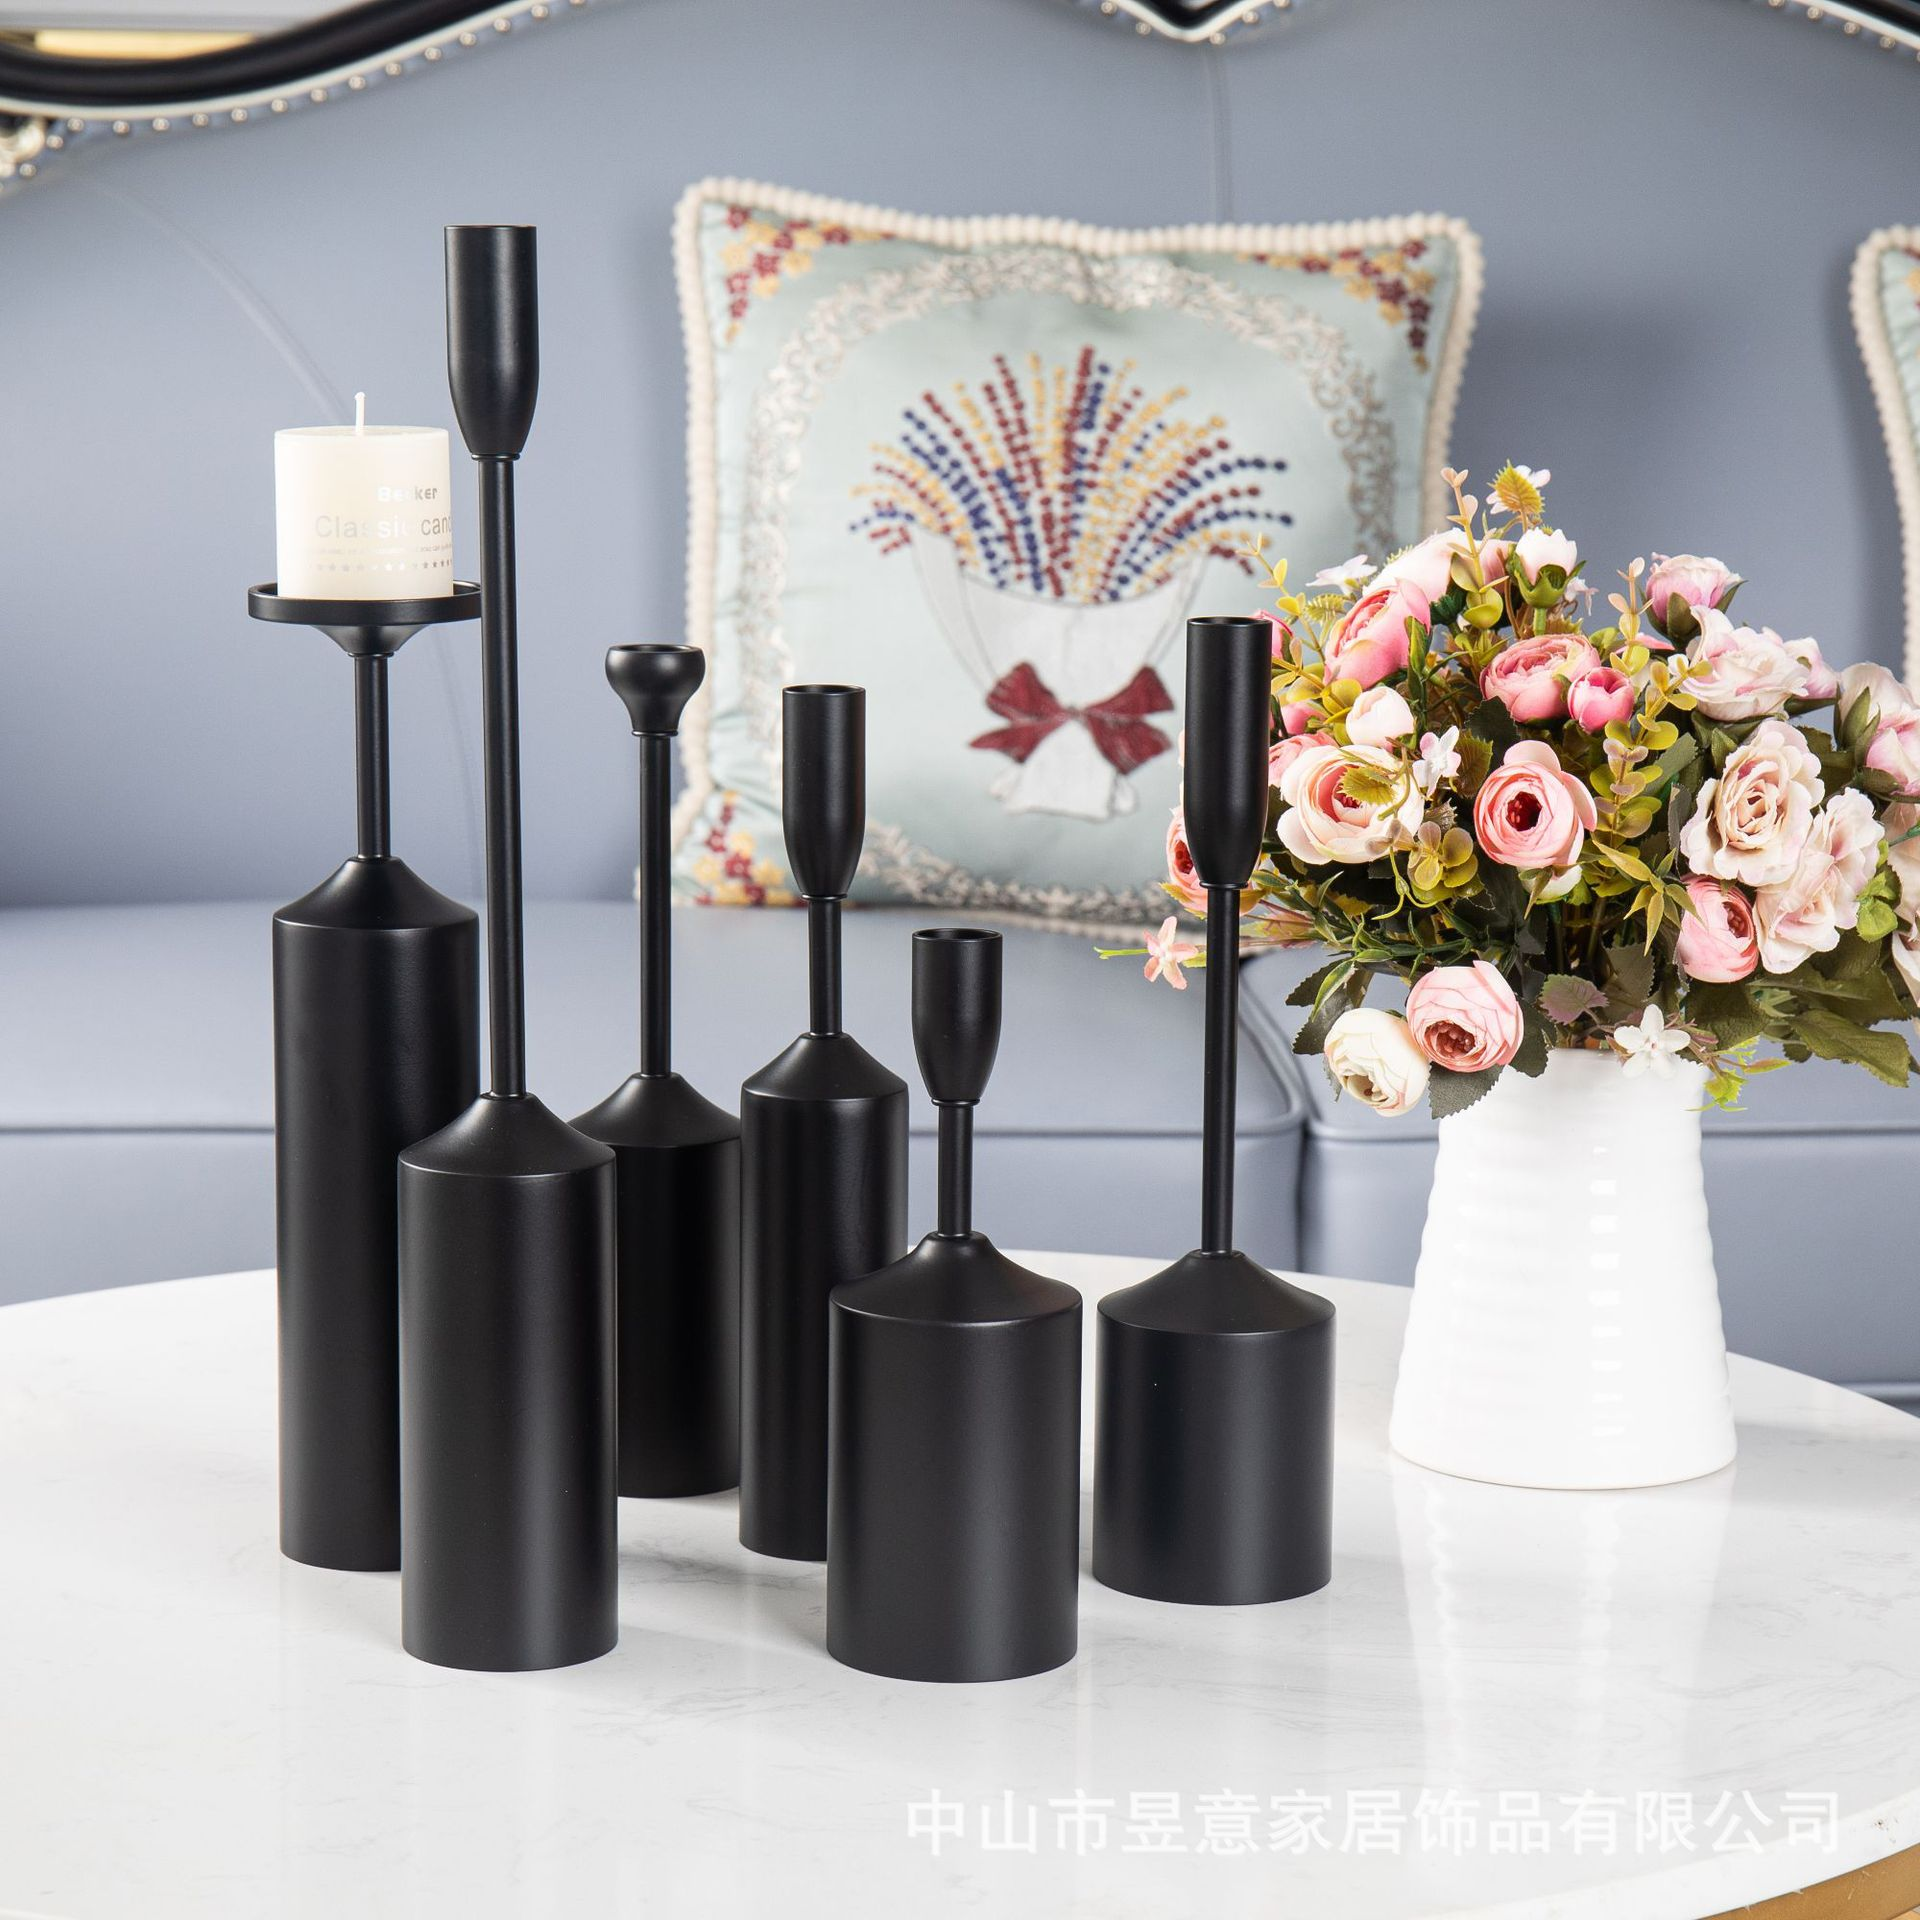 Minimalist Black Candle Holders for Modern Home Décor Inspiration